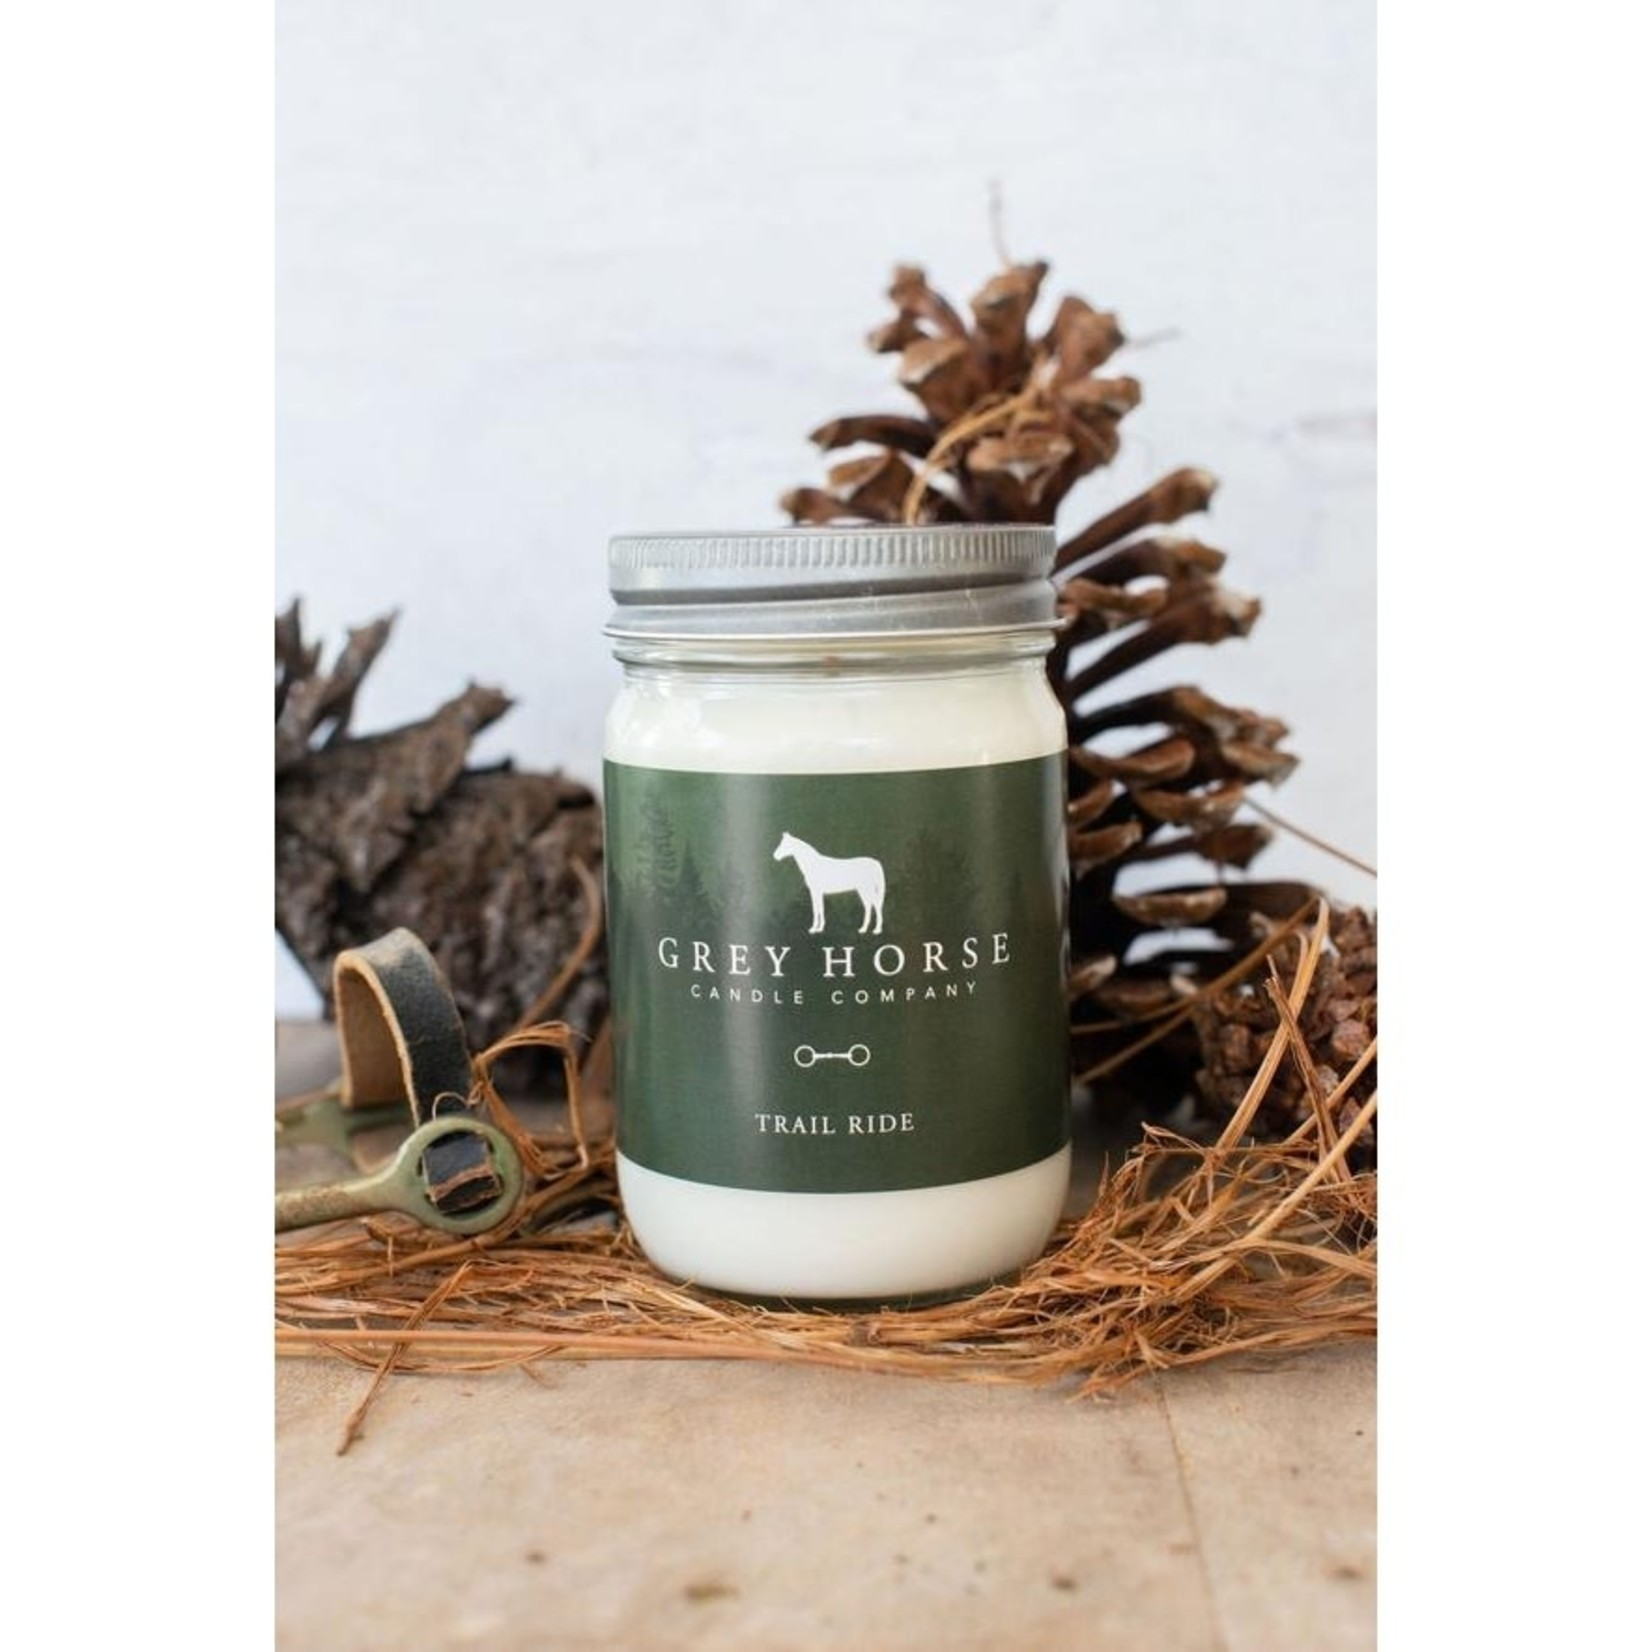 Grey Horse Candles Grey Horse Candle - Trail Ride 12oz